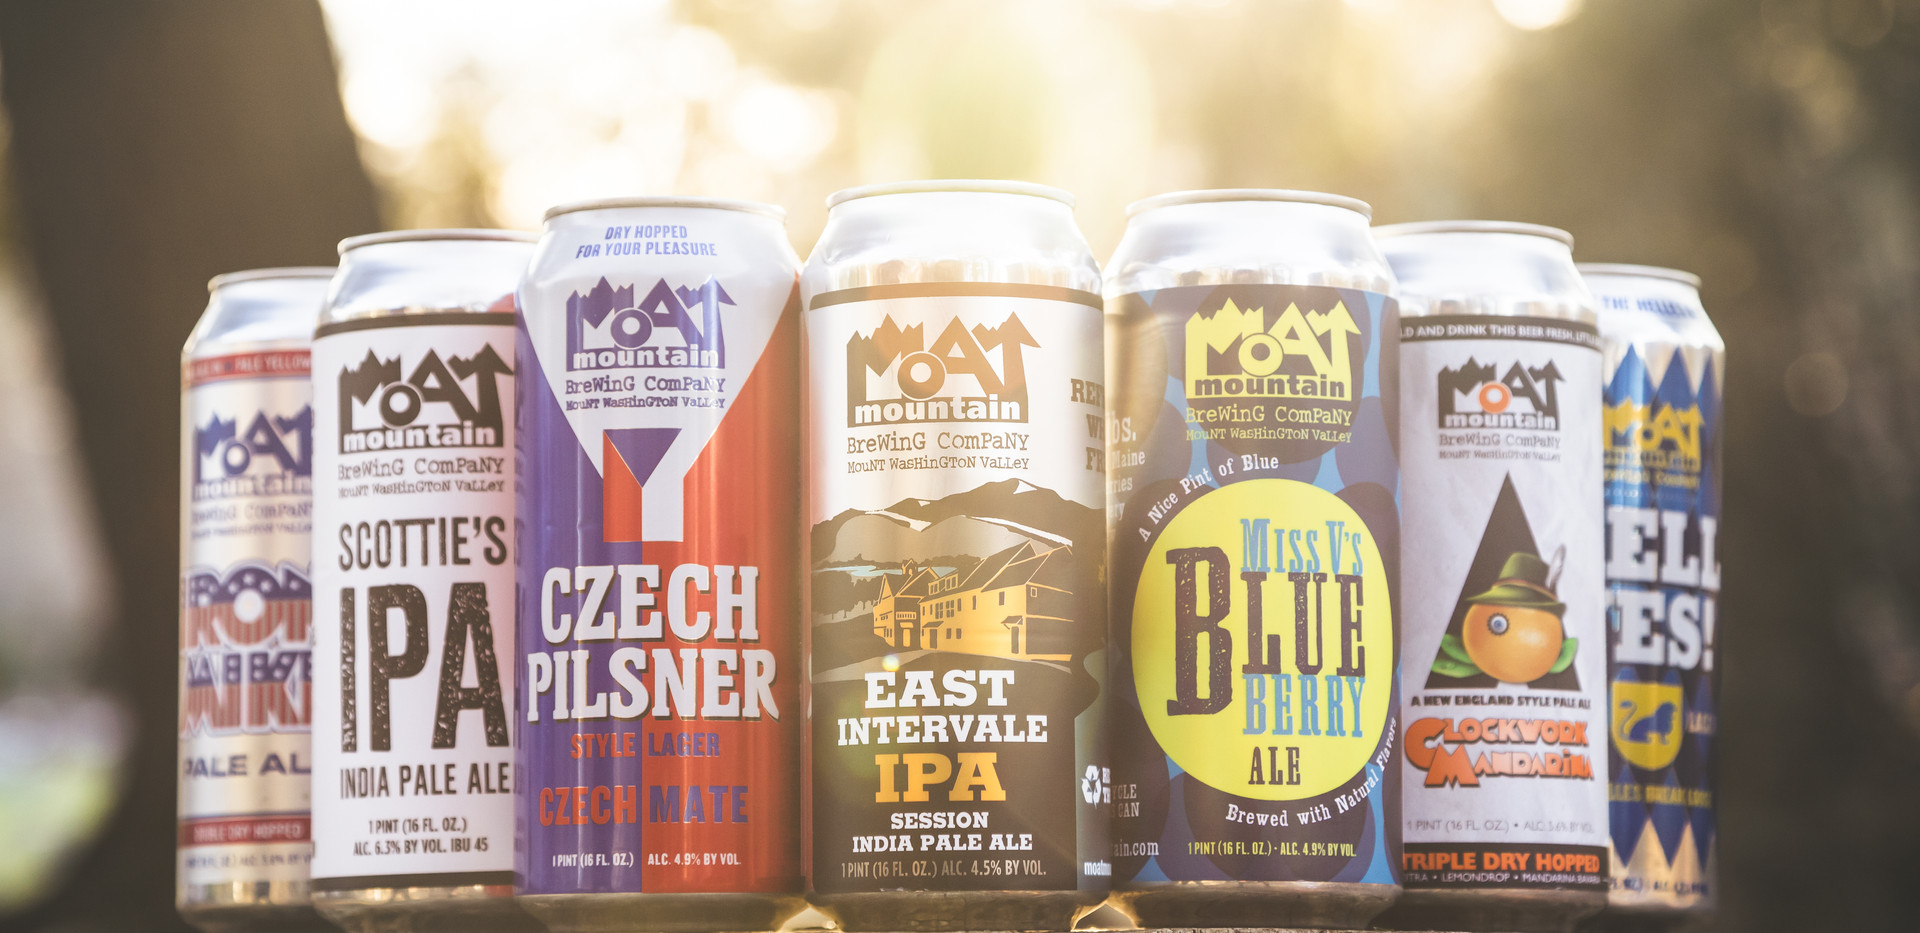 Moat Mountain Brewing